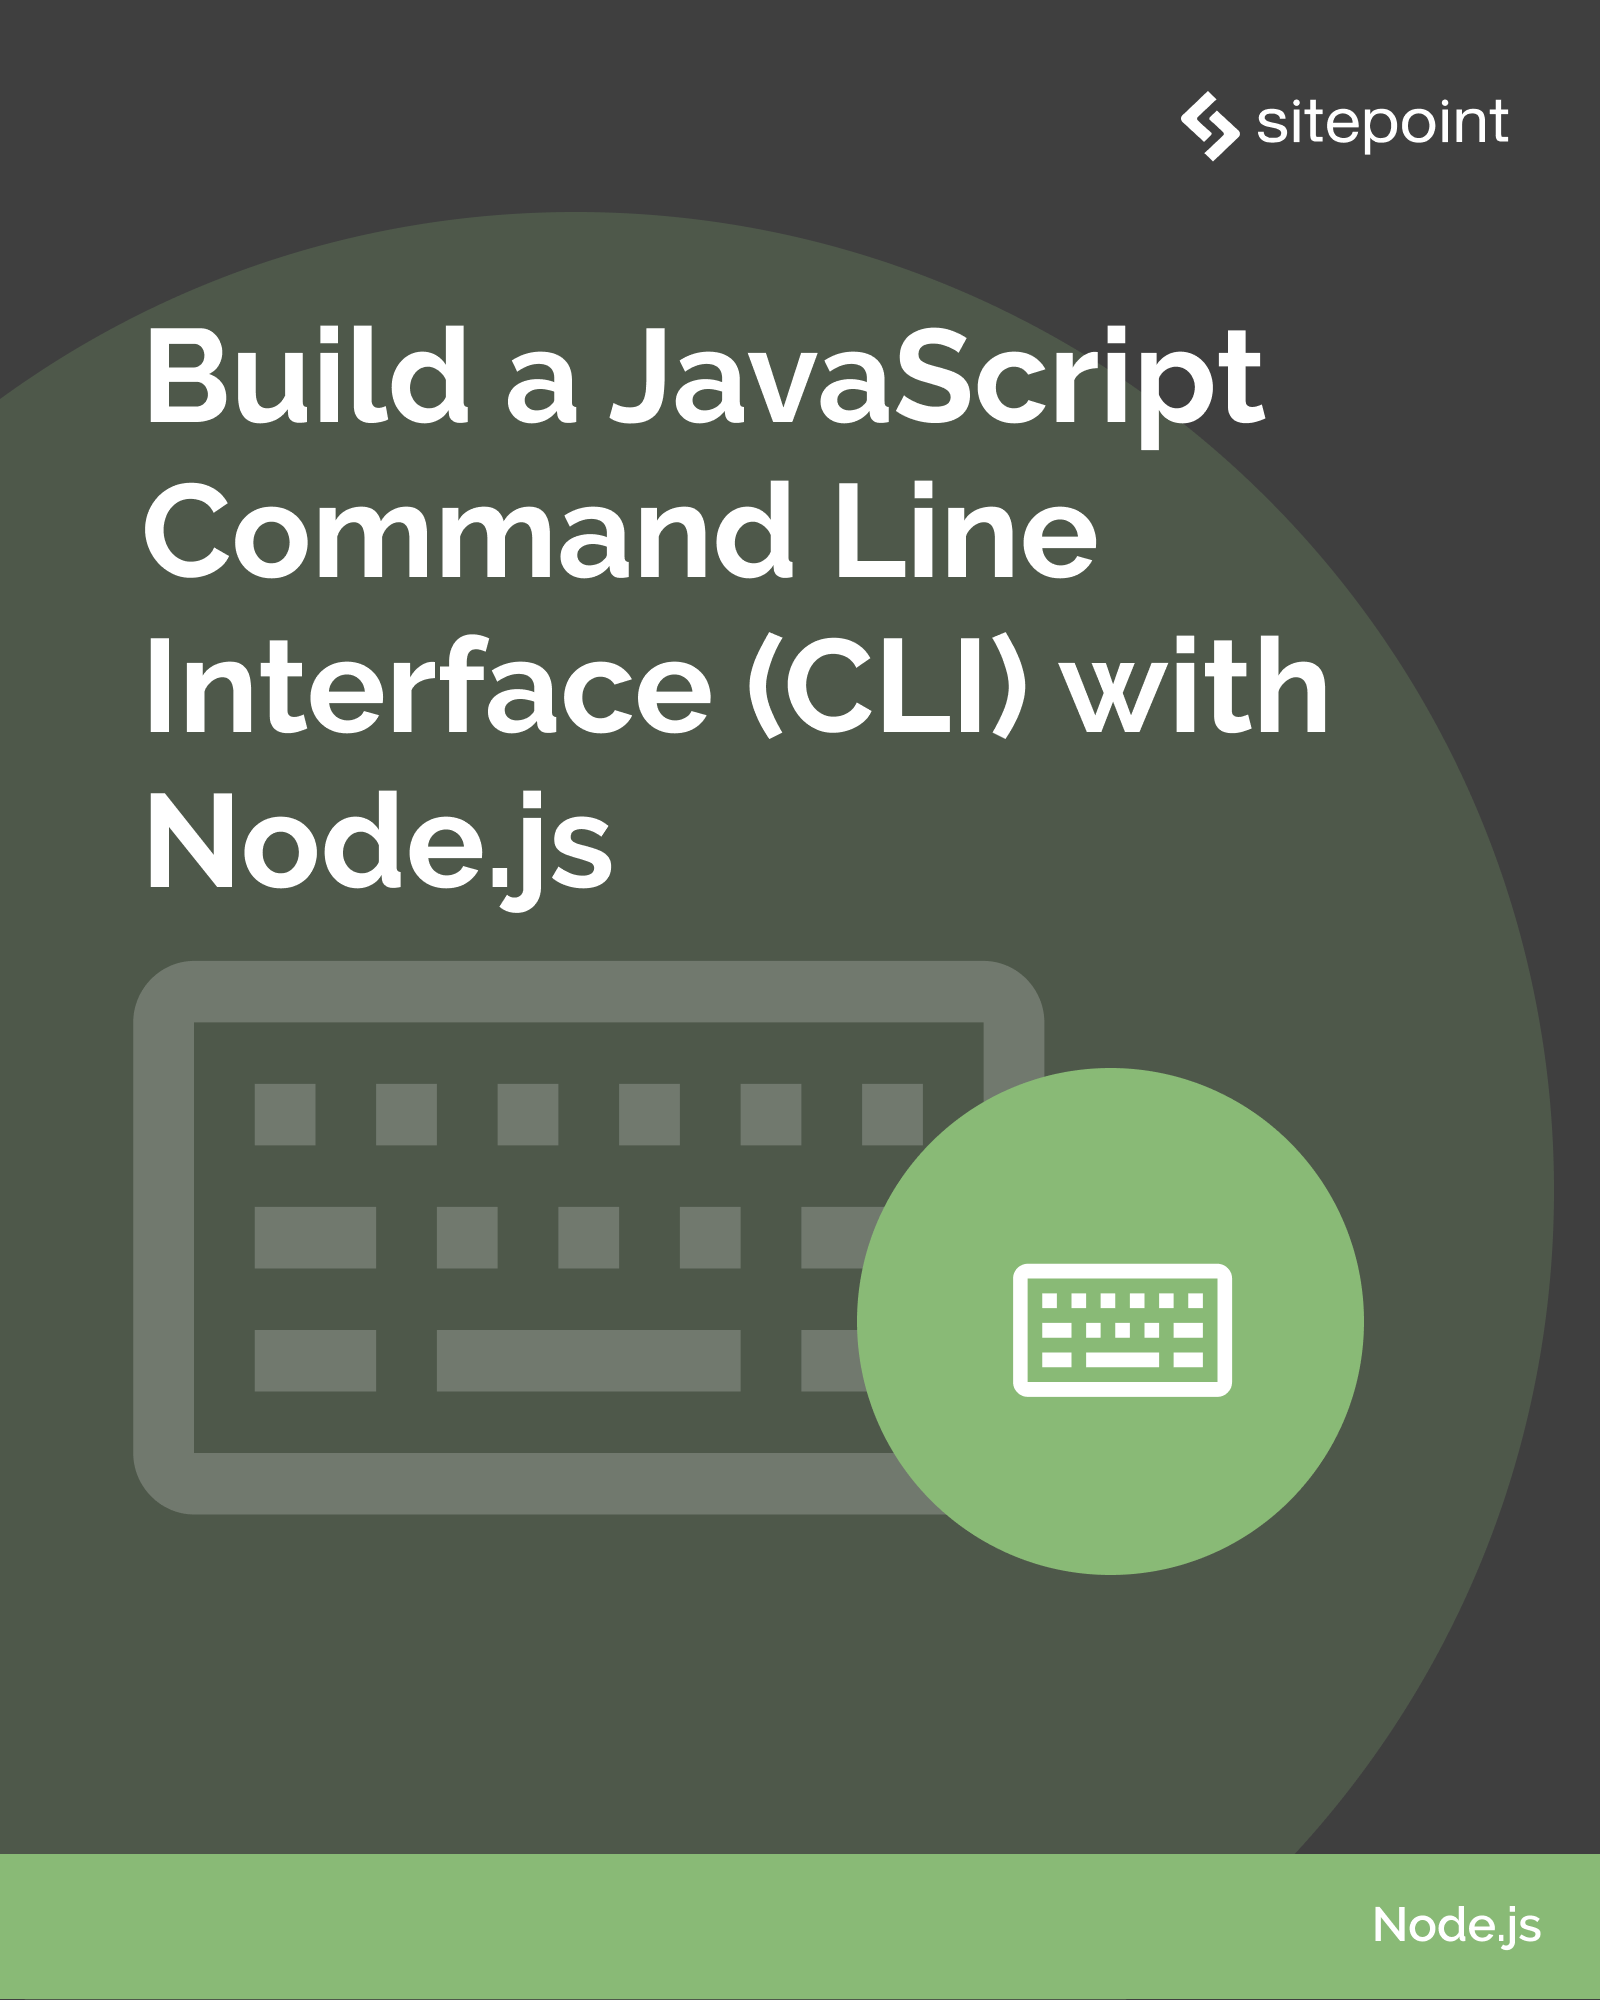 Build a JavaScript Command Line Interface (CLI) with Node.js